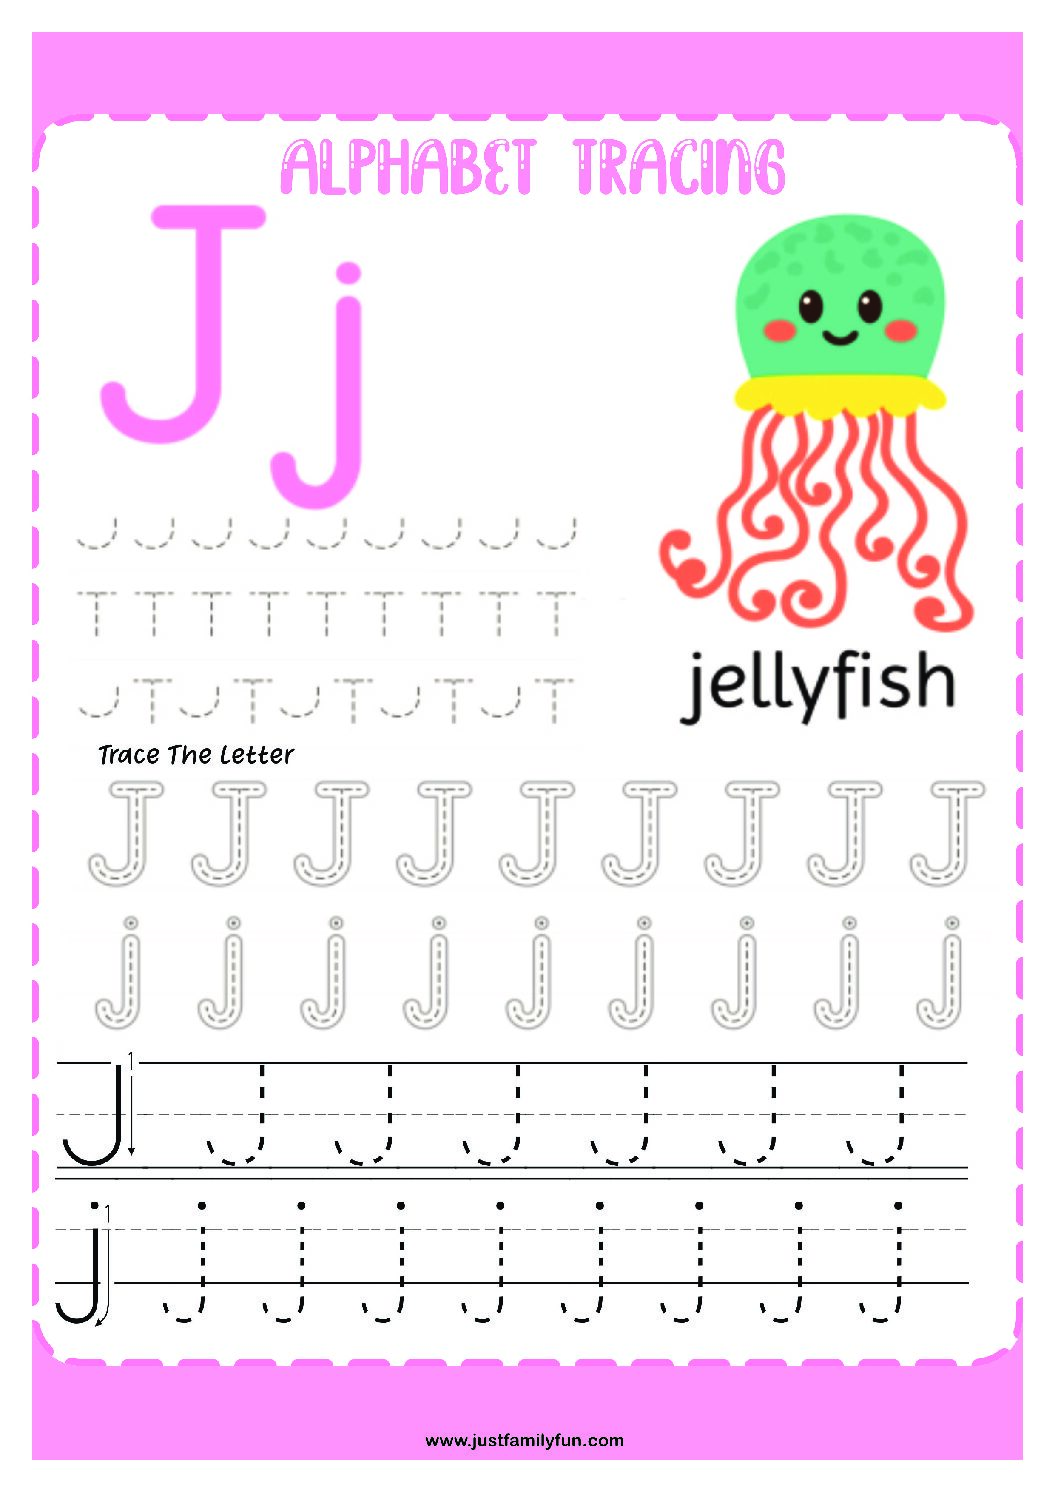 Alphabets_10-pdf Free Printable Trace The Alphabet Worksheets for Kids.